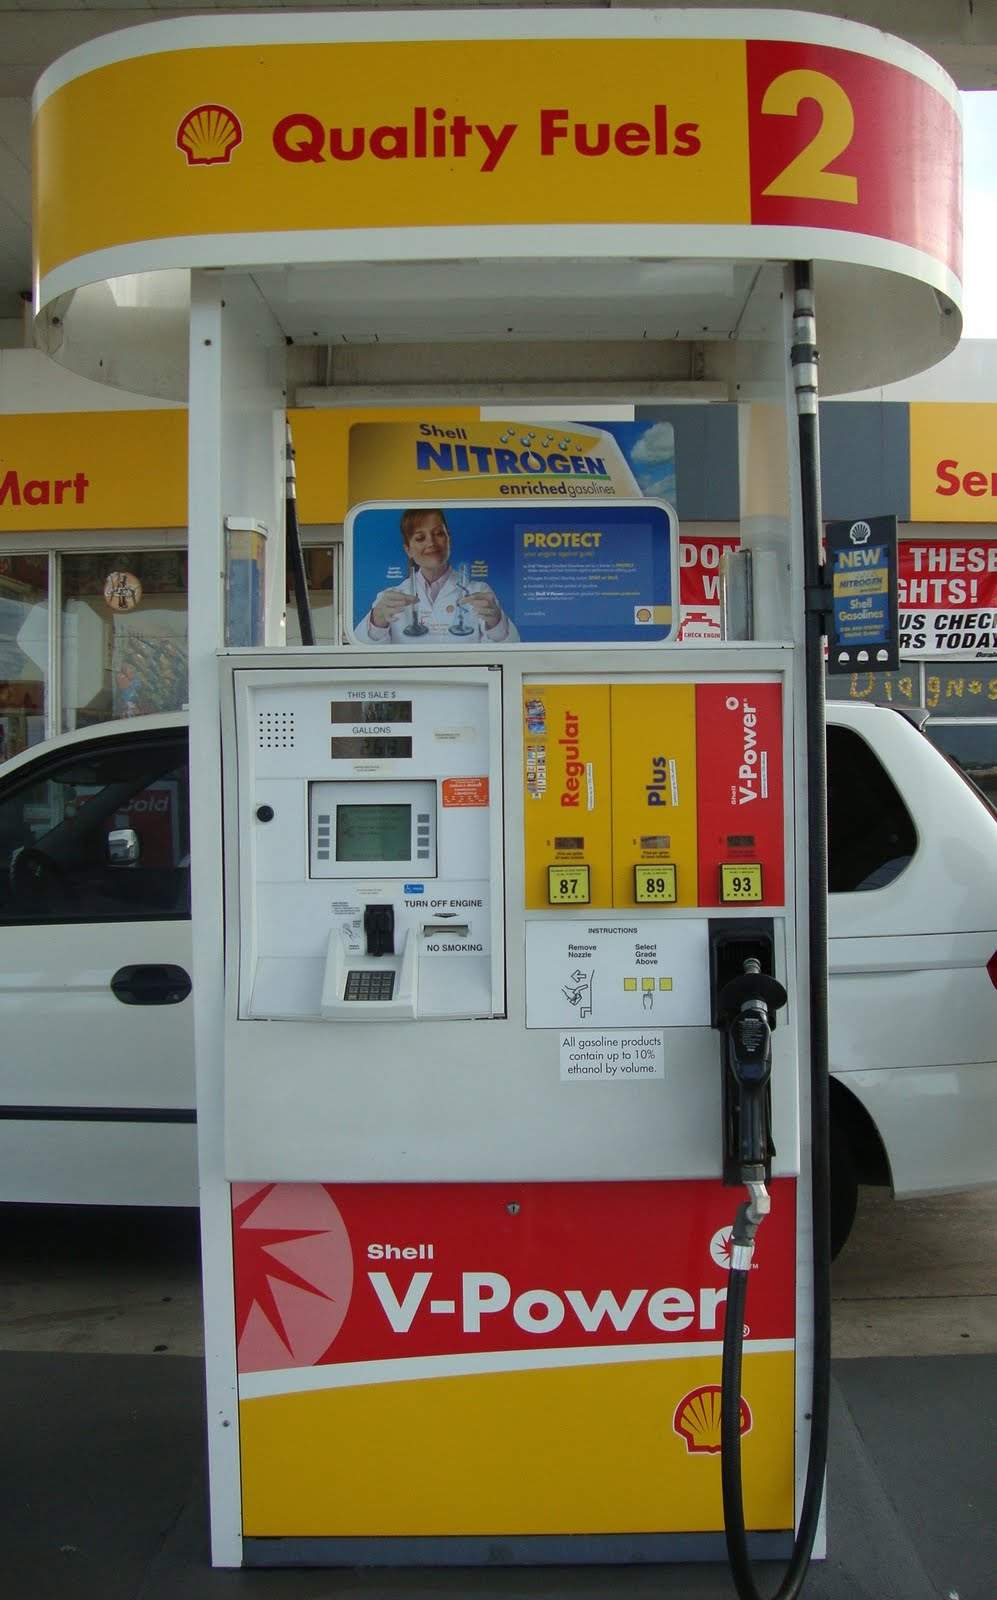 Find Nearest Gas Station >> Explore Florida: Shell Gas Station